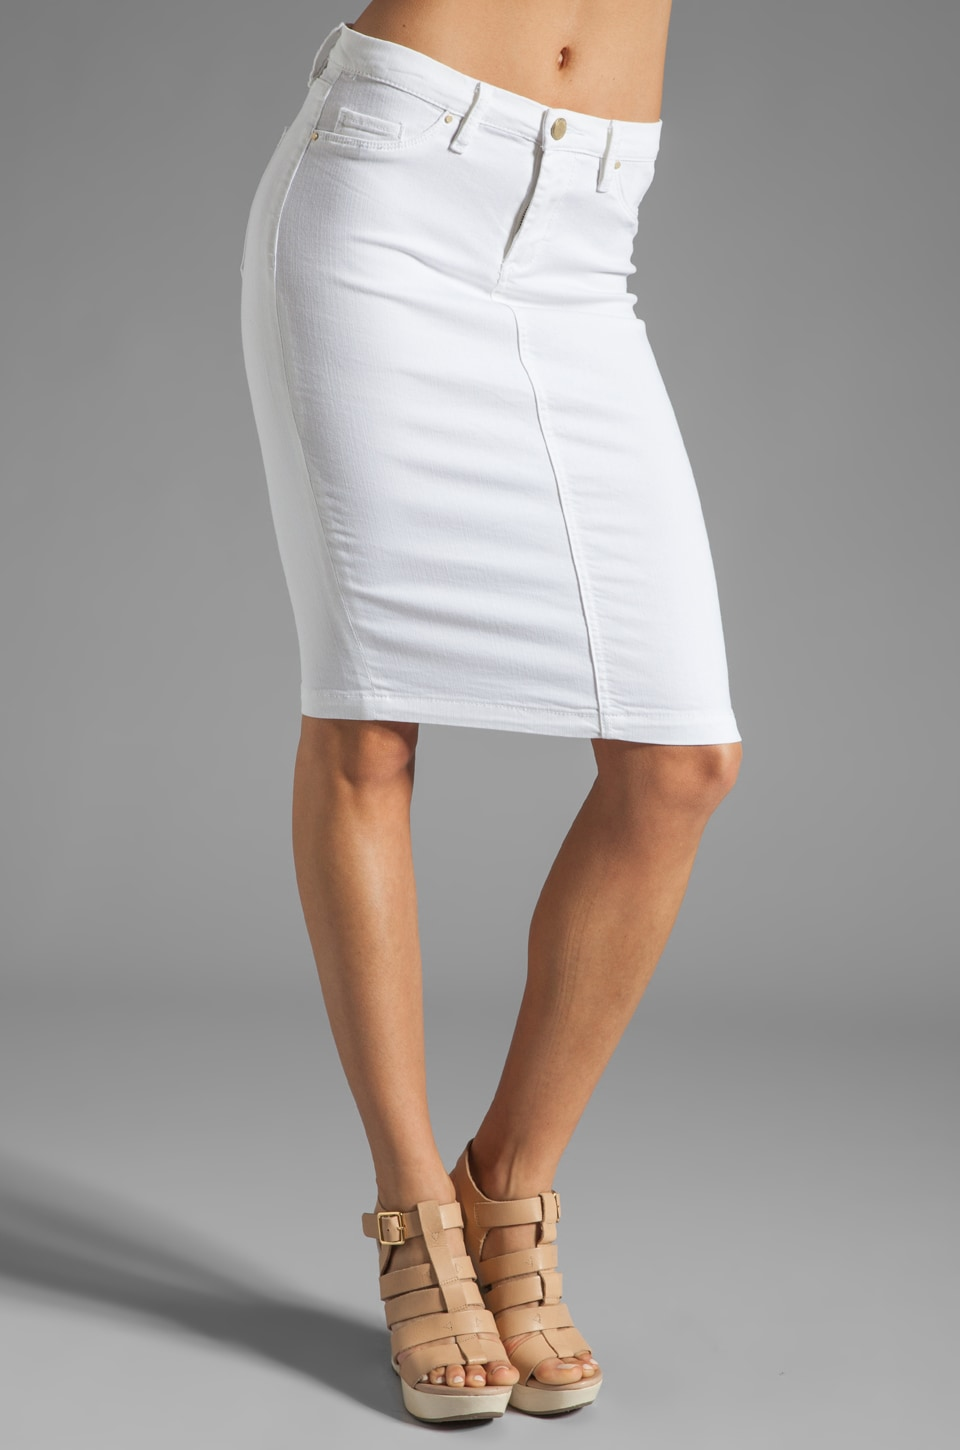 BLANKNYC Pencil Skirt in White Lines